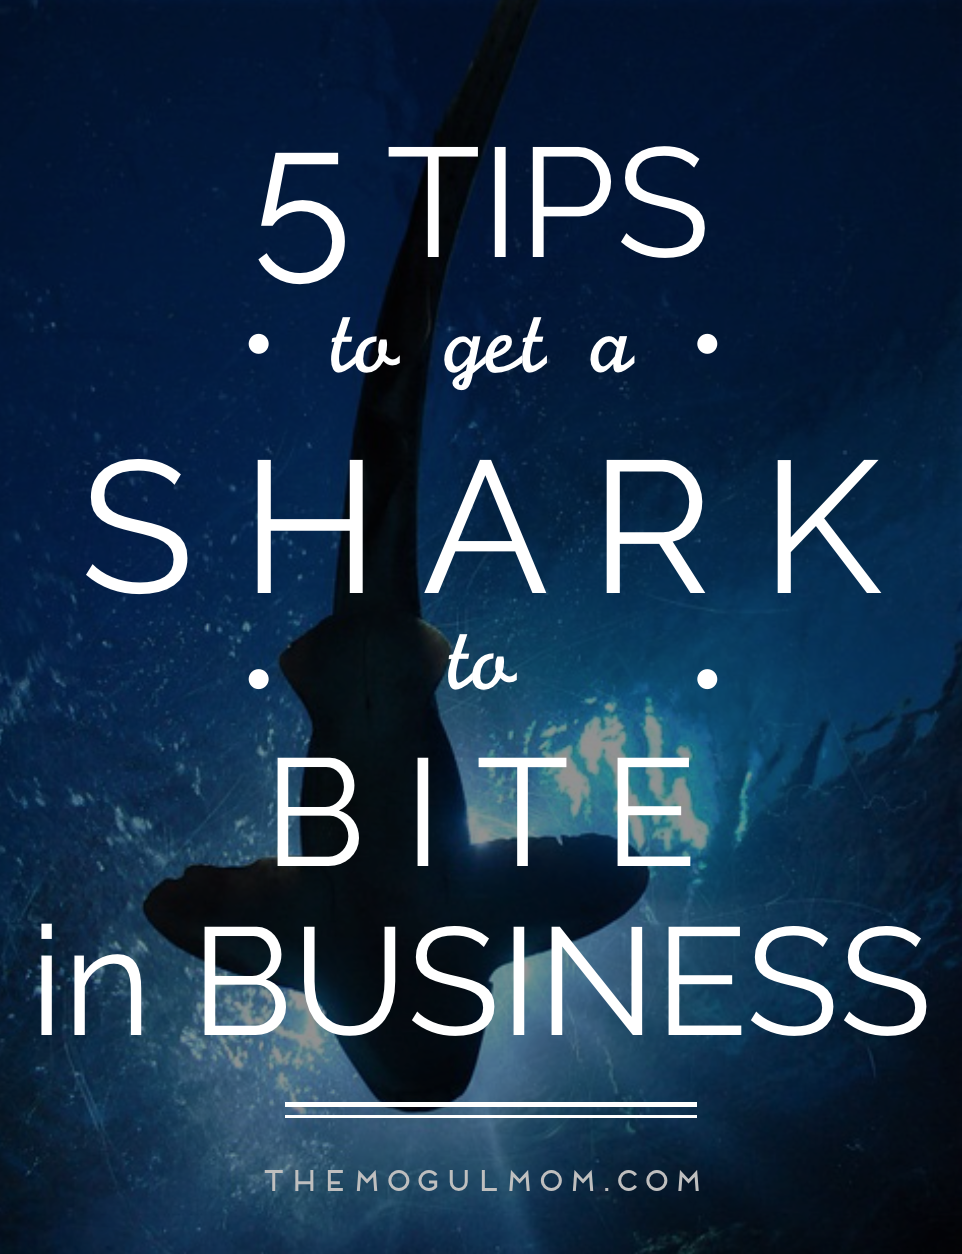 Five Tips to Get a Shark to Bite in Business